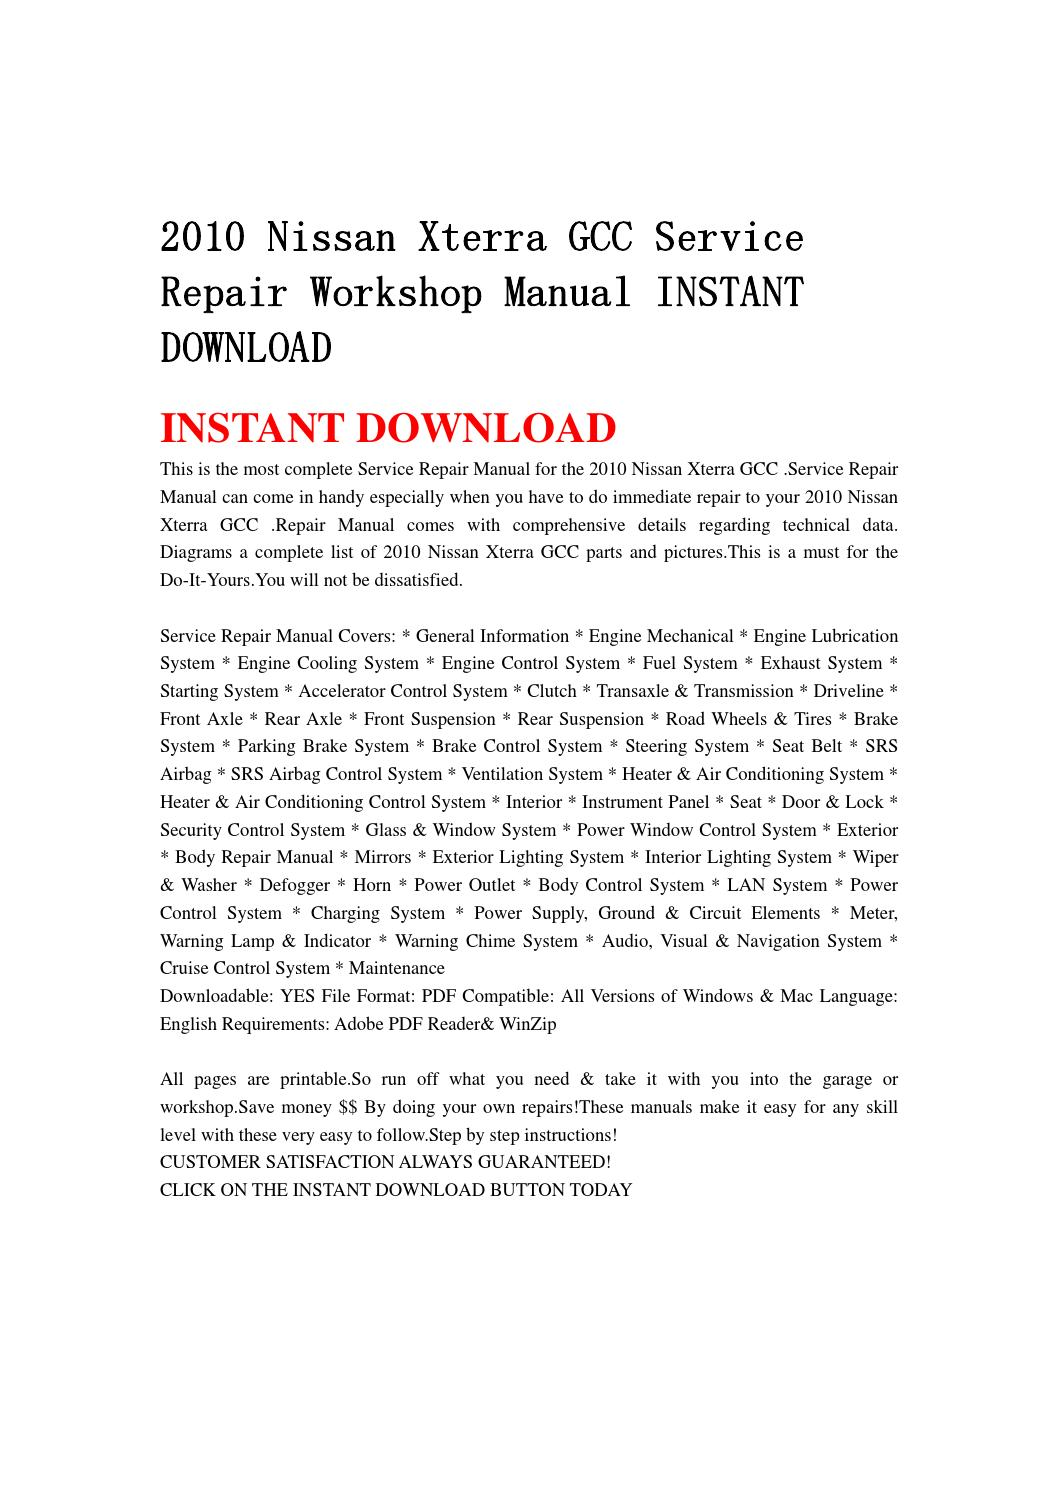 2010 nissan xterra gcc service repair workshop manual instant download by  jsefgsebh - issuu